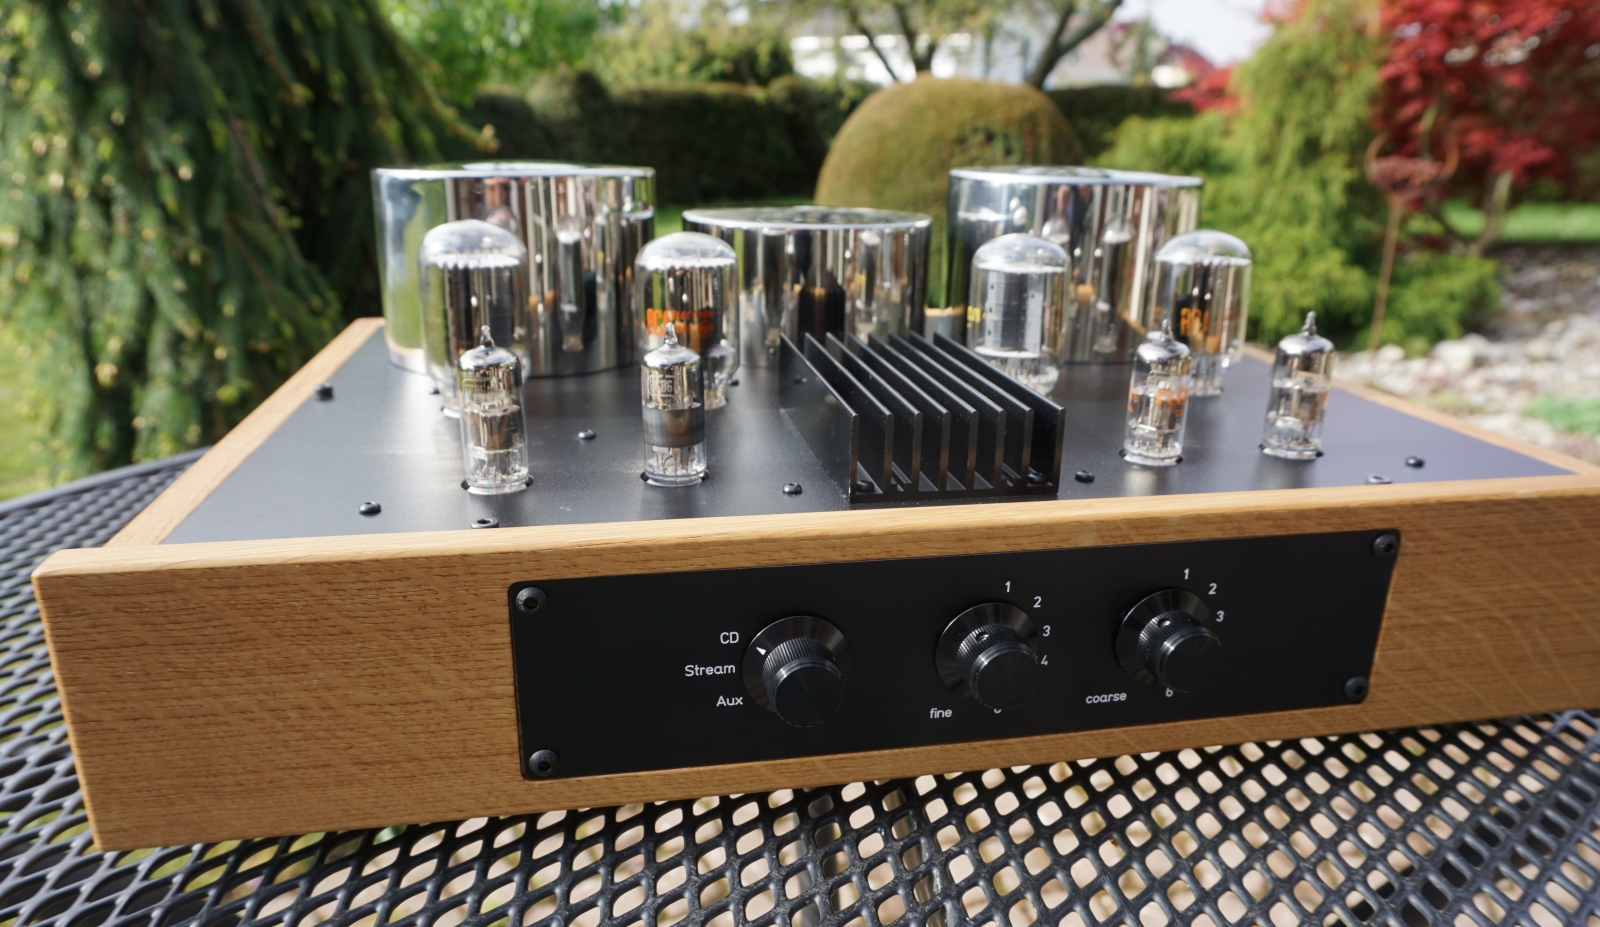 amplifier front view